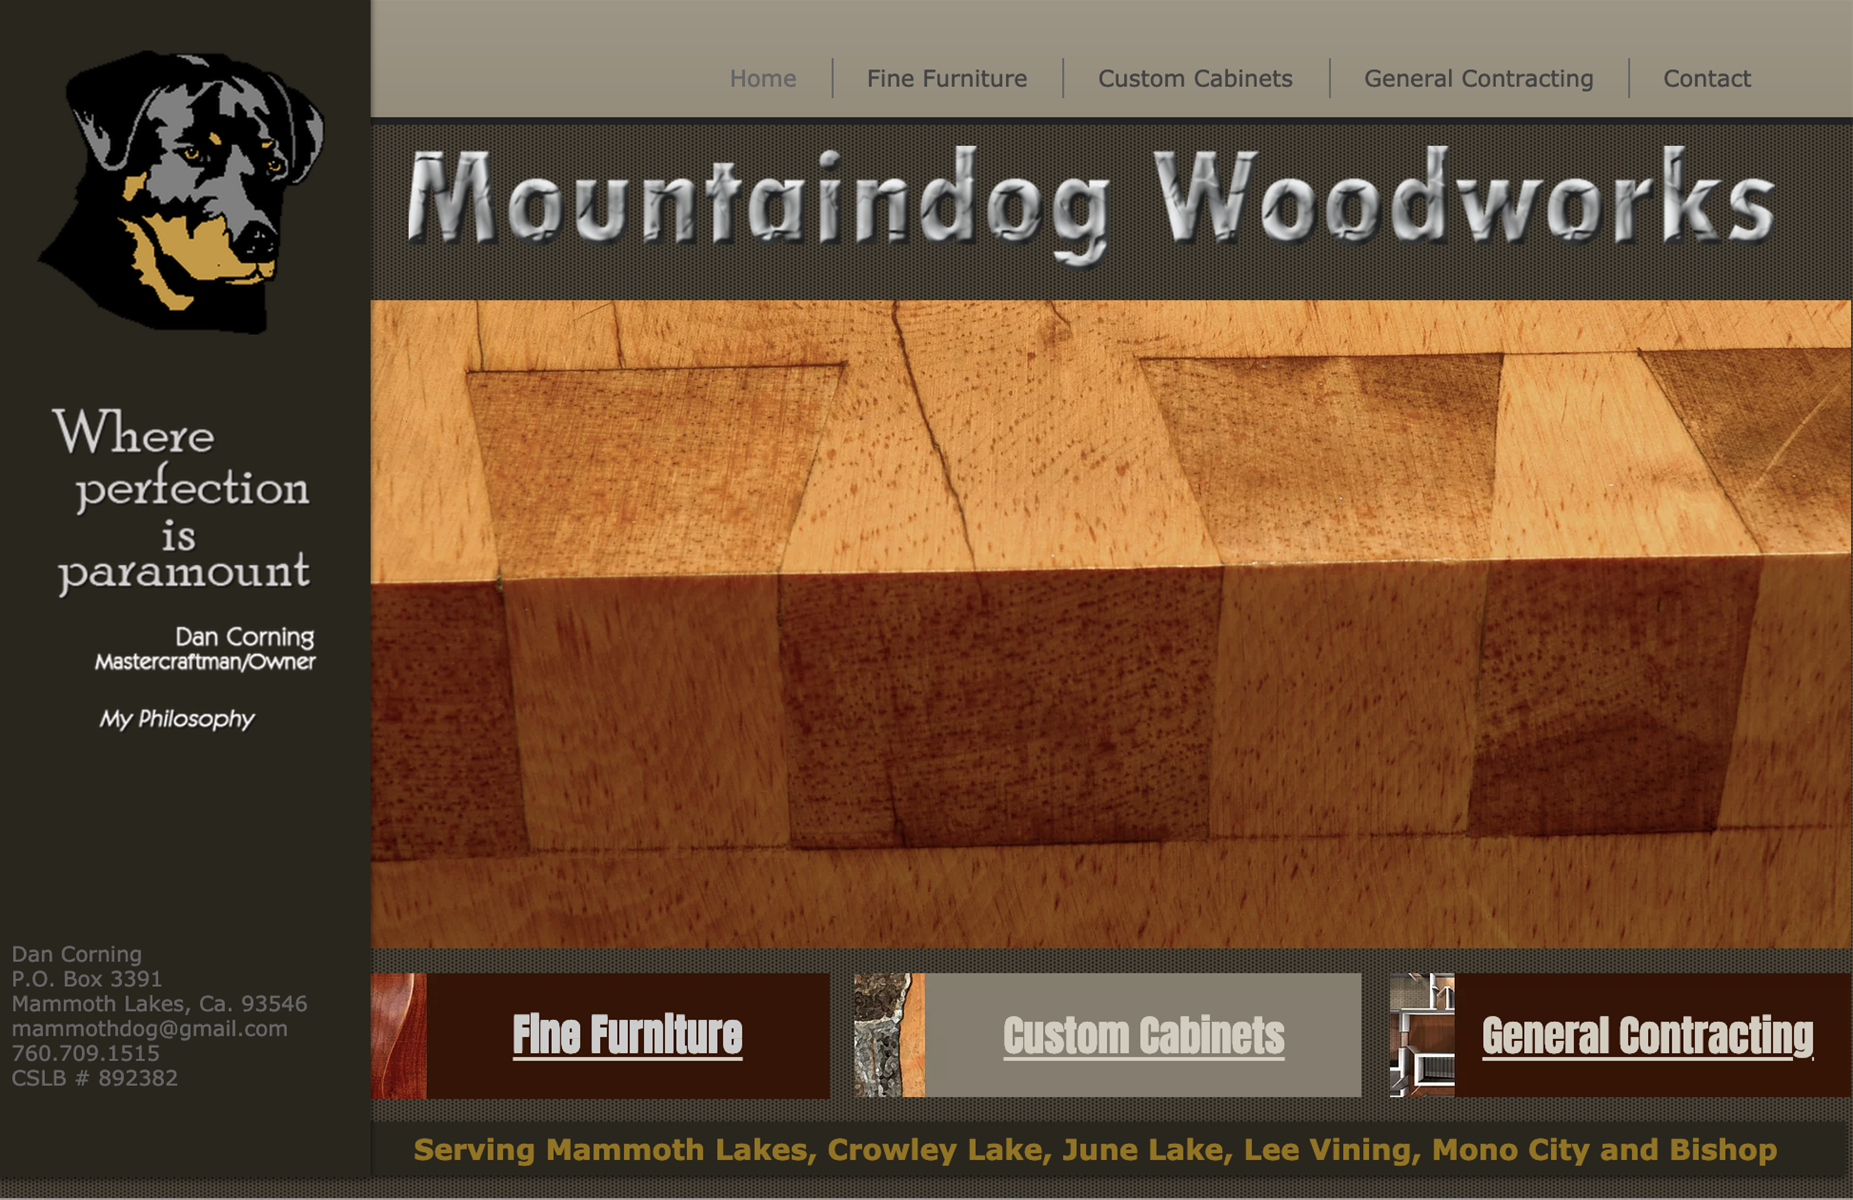 Mountaindog Woodworks